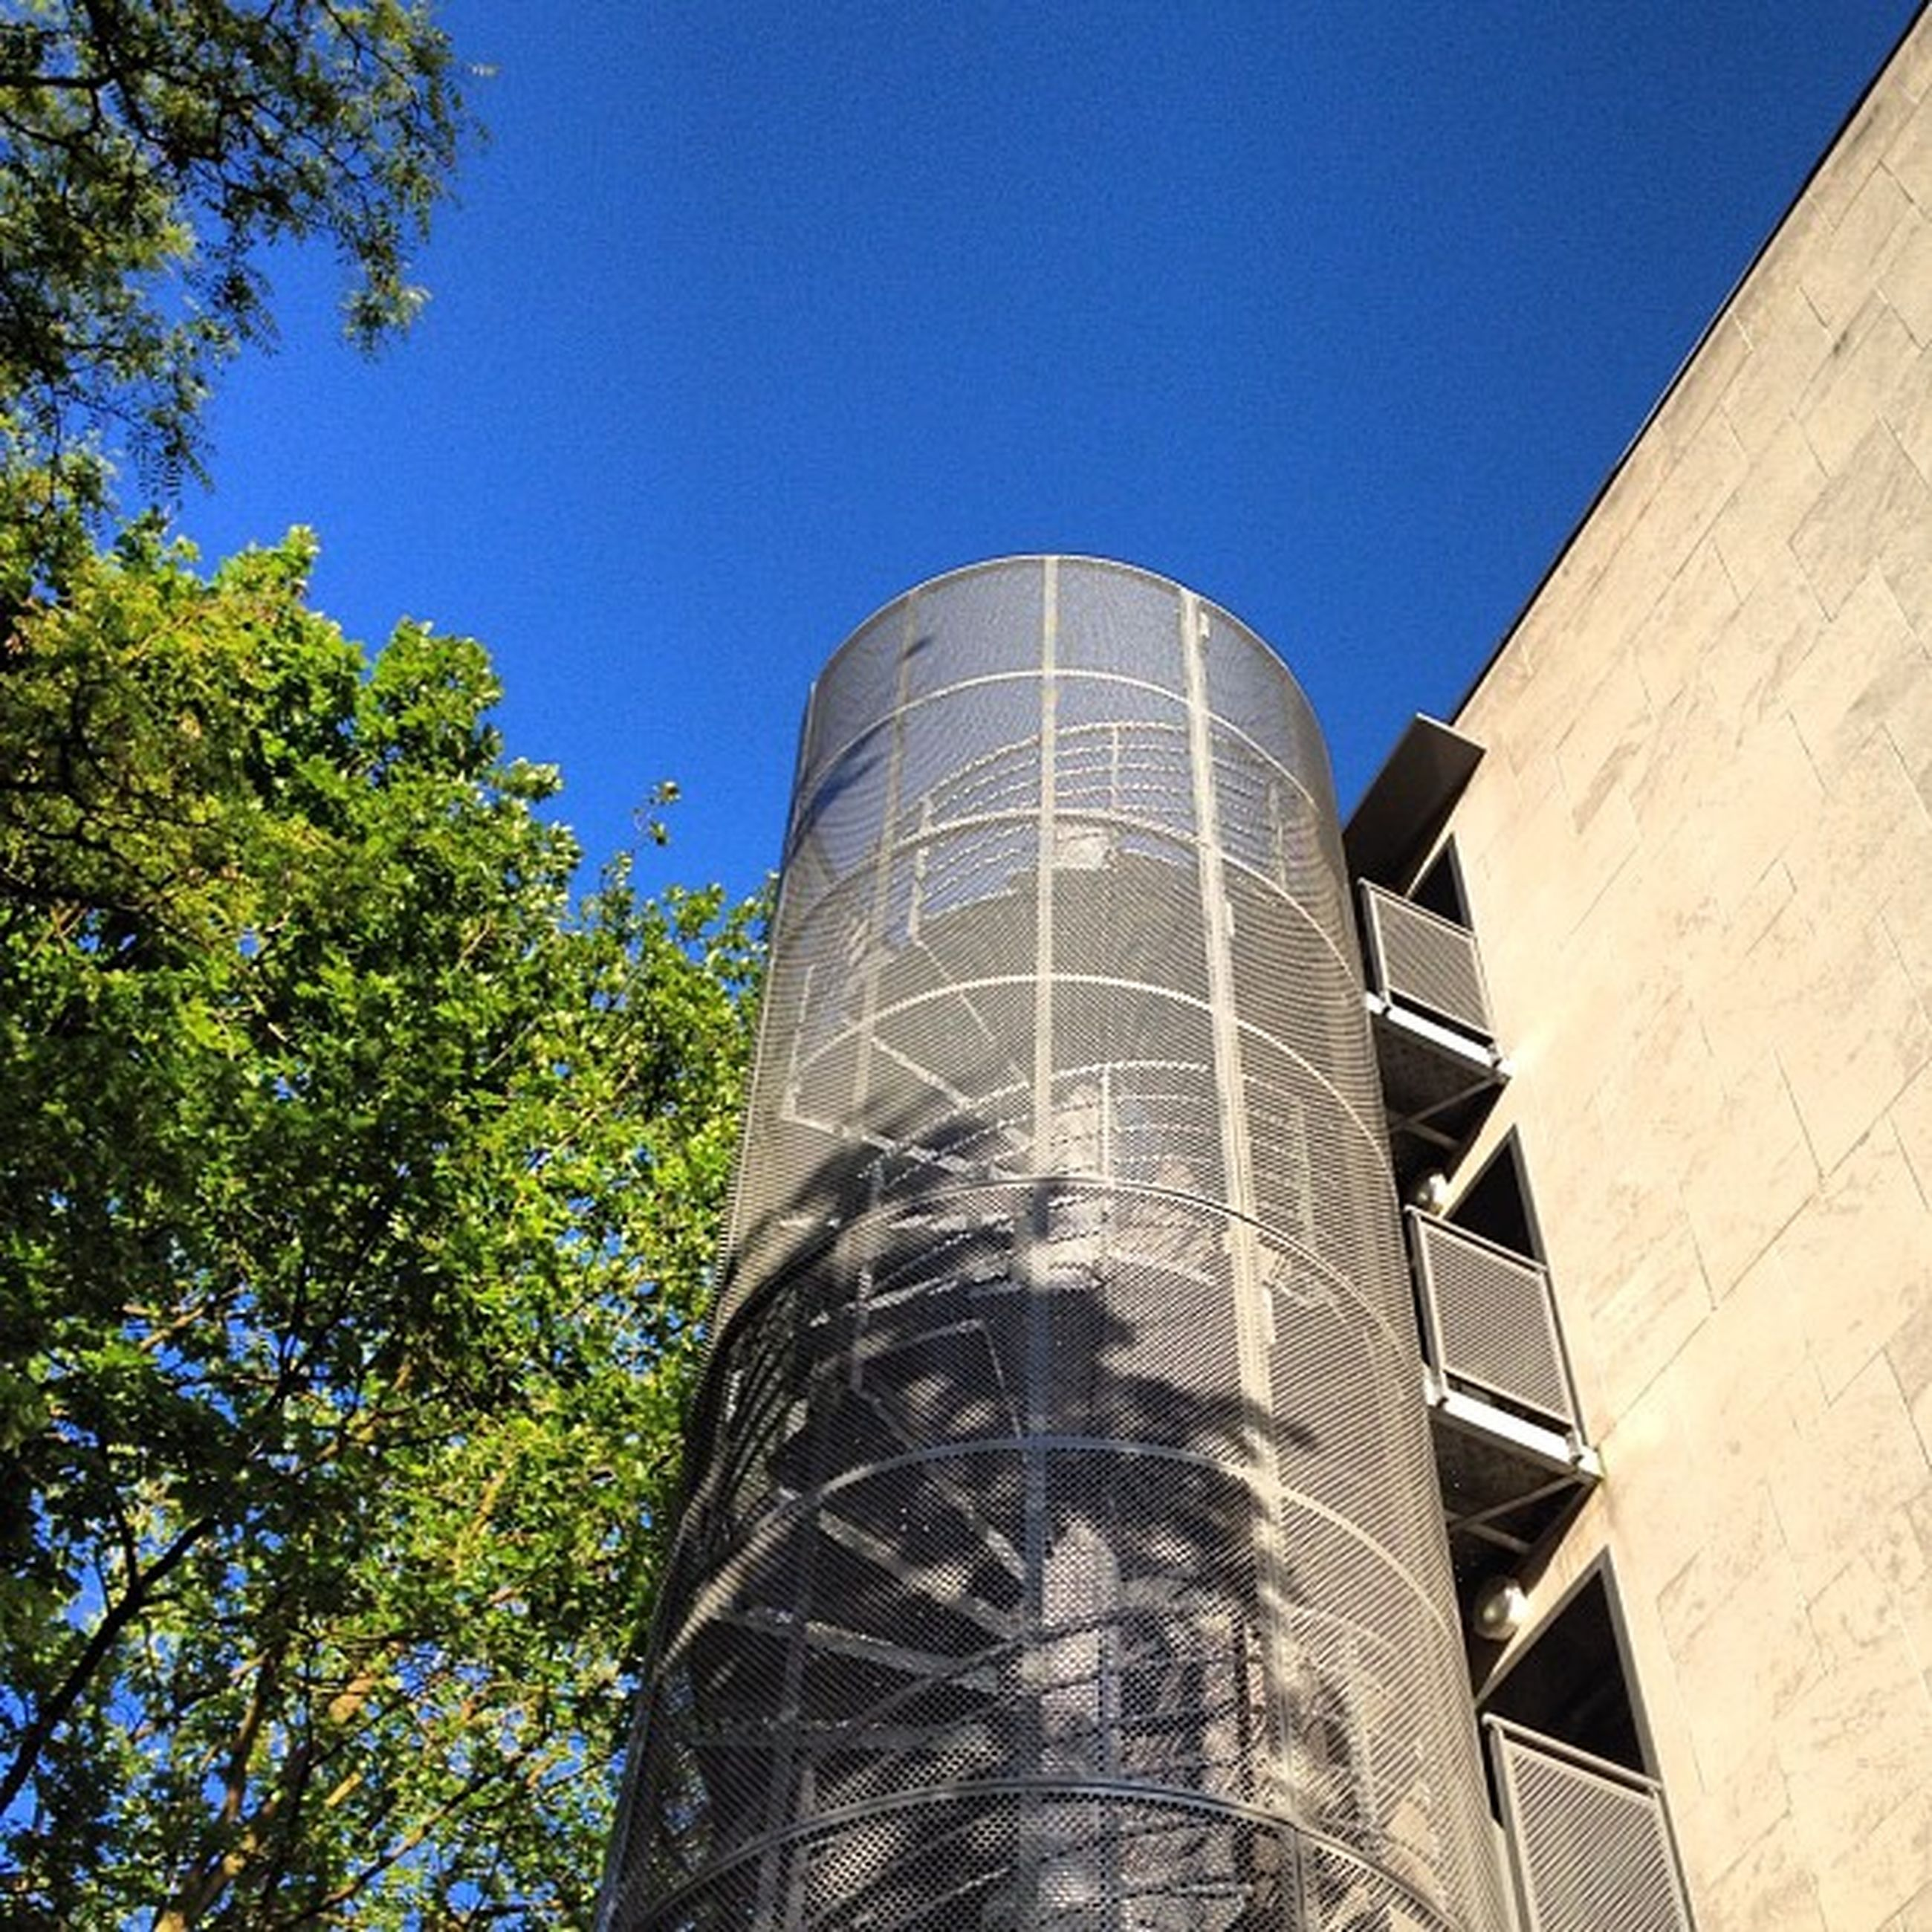 architecture, built structure, building exterior, clear sky, blue, low angle view, tree, tower, tall - high, famous place, copy space, modern, travel destinations, day, city, sunlight, outdoors, no people, building, architectural feature